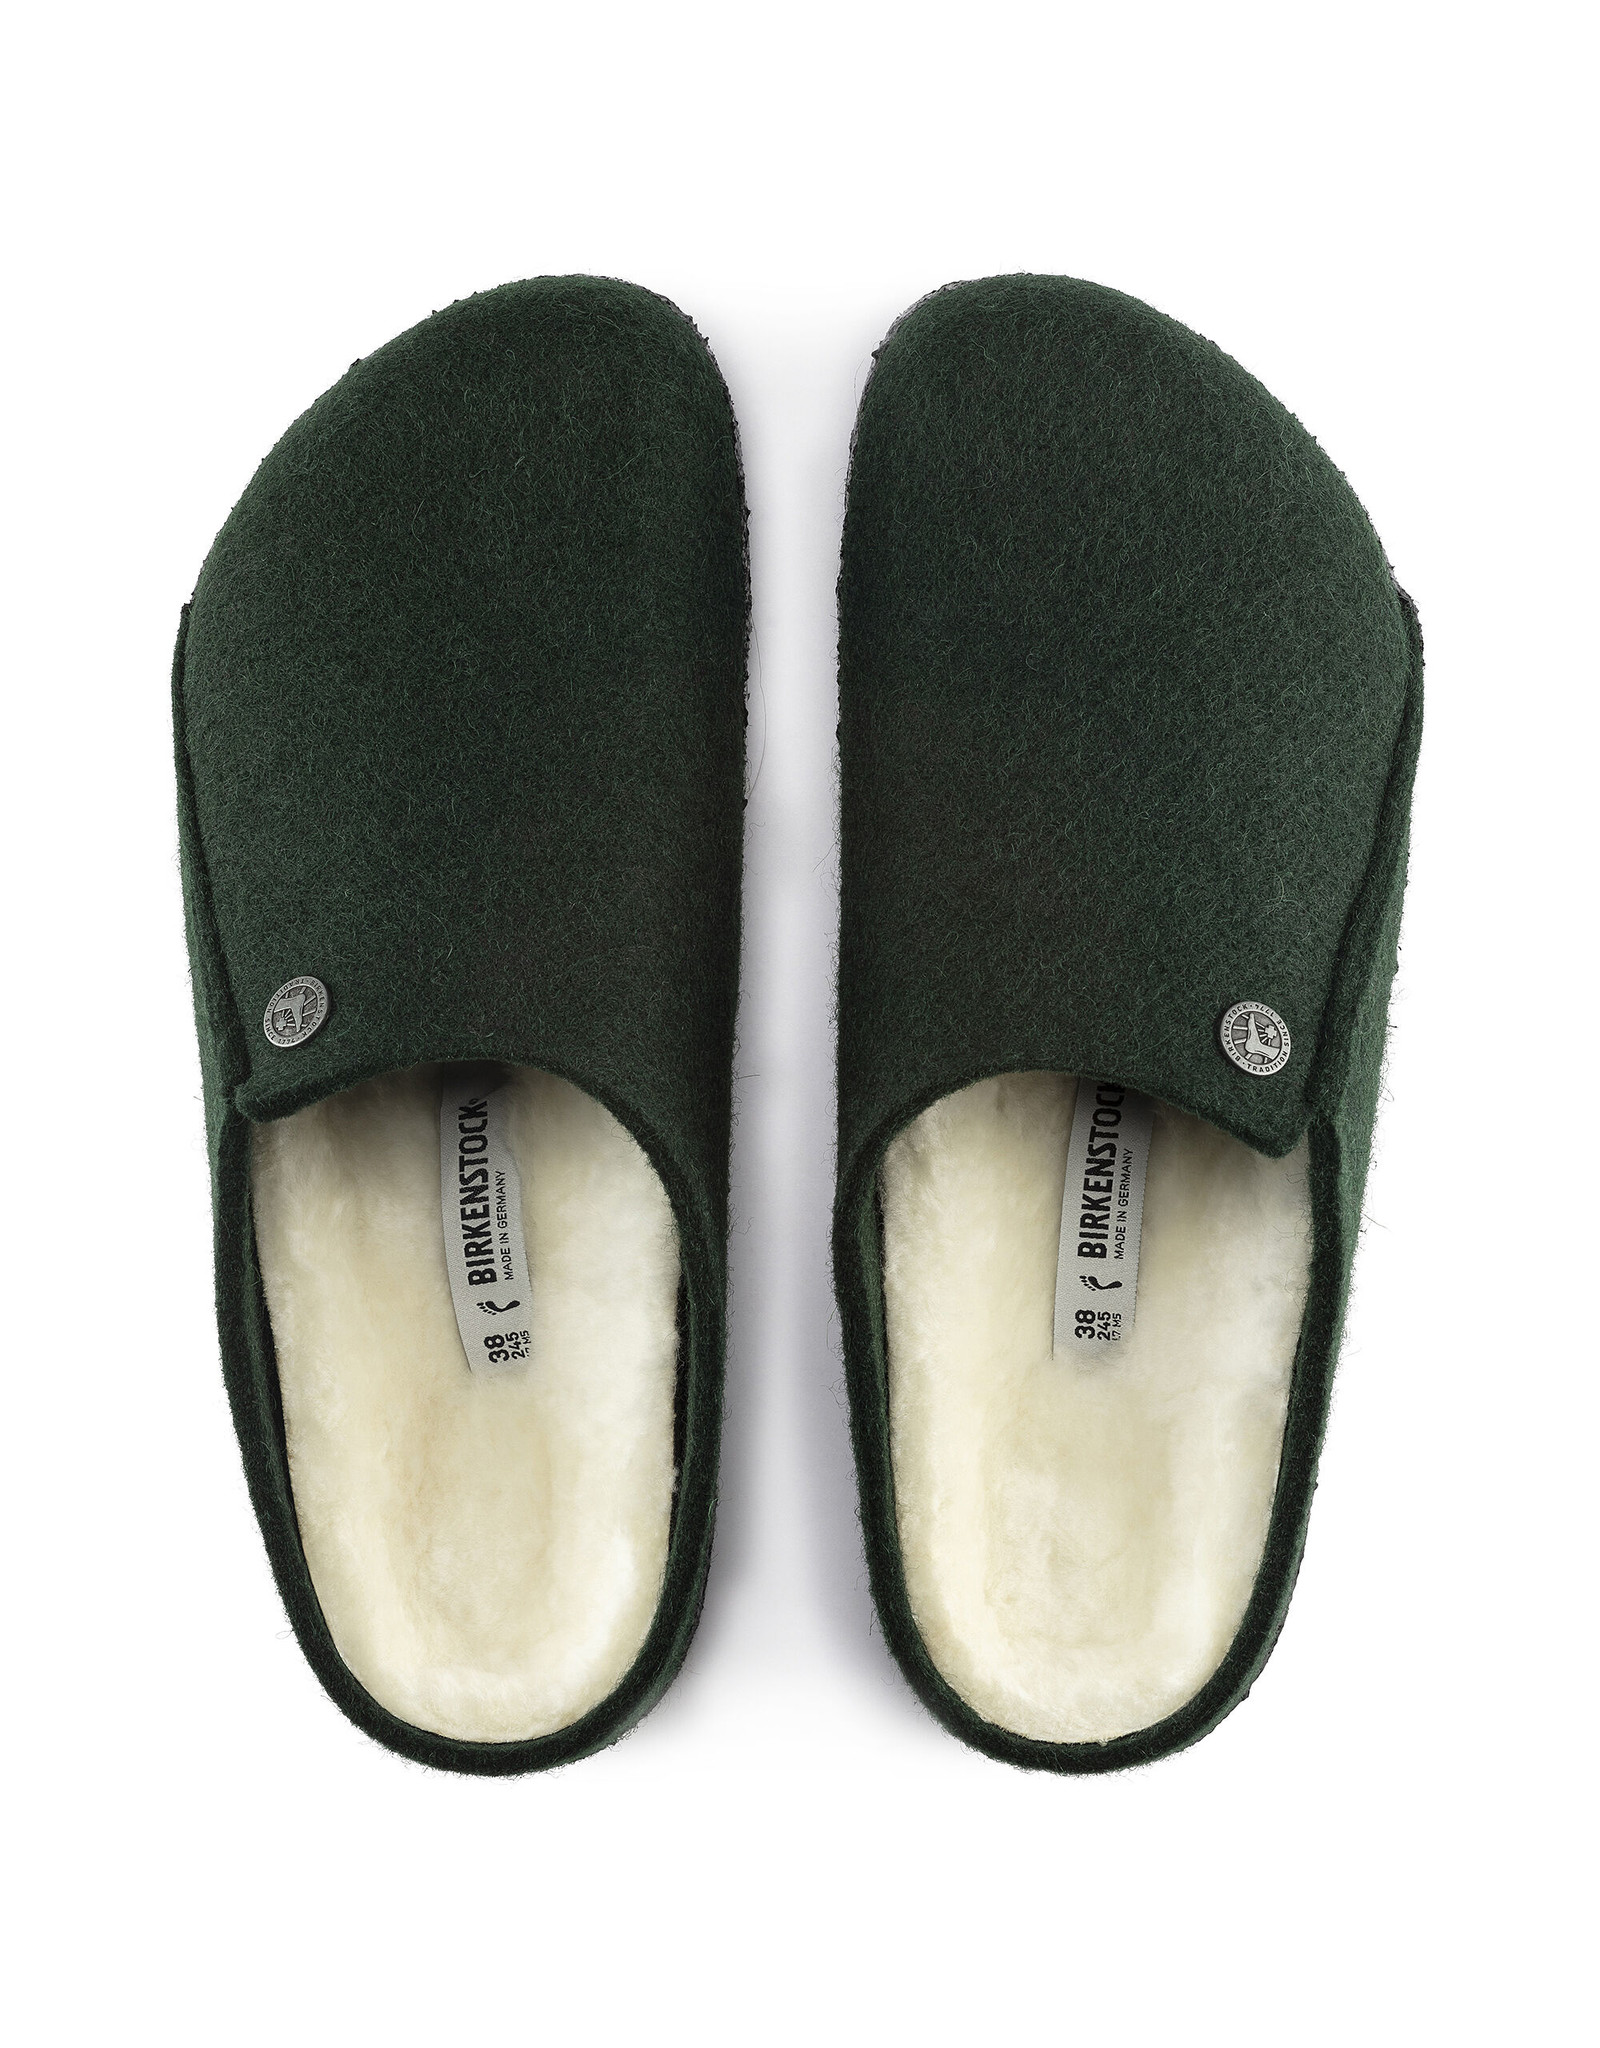 BIRKENSTOCK ZERMATT WOOL FELT SLIPPER-FOREST GREEN